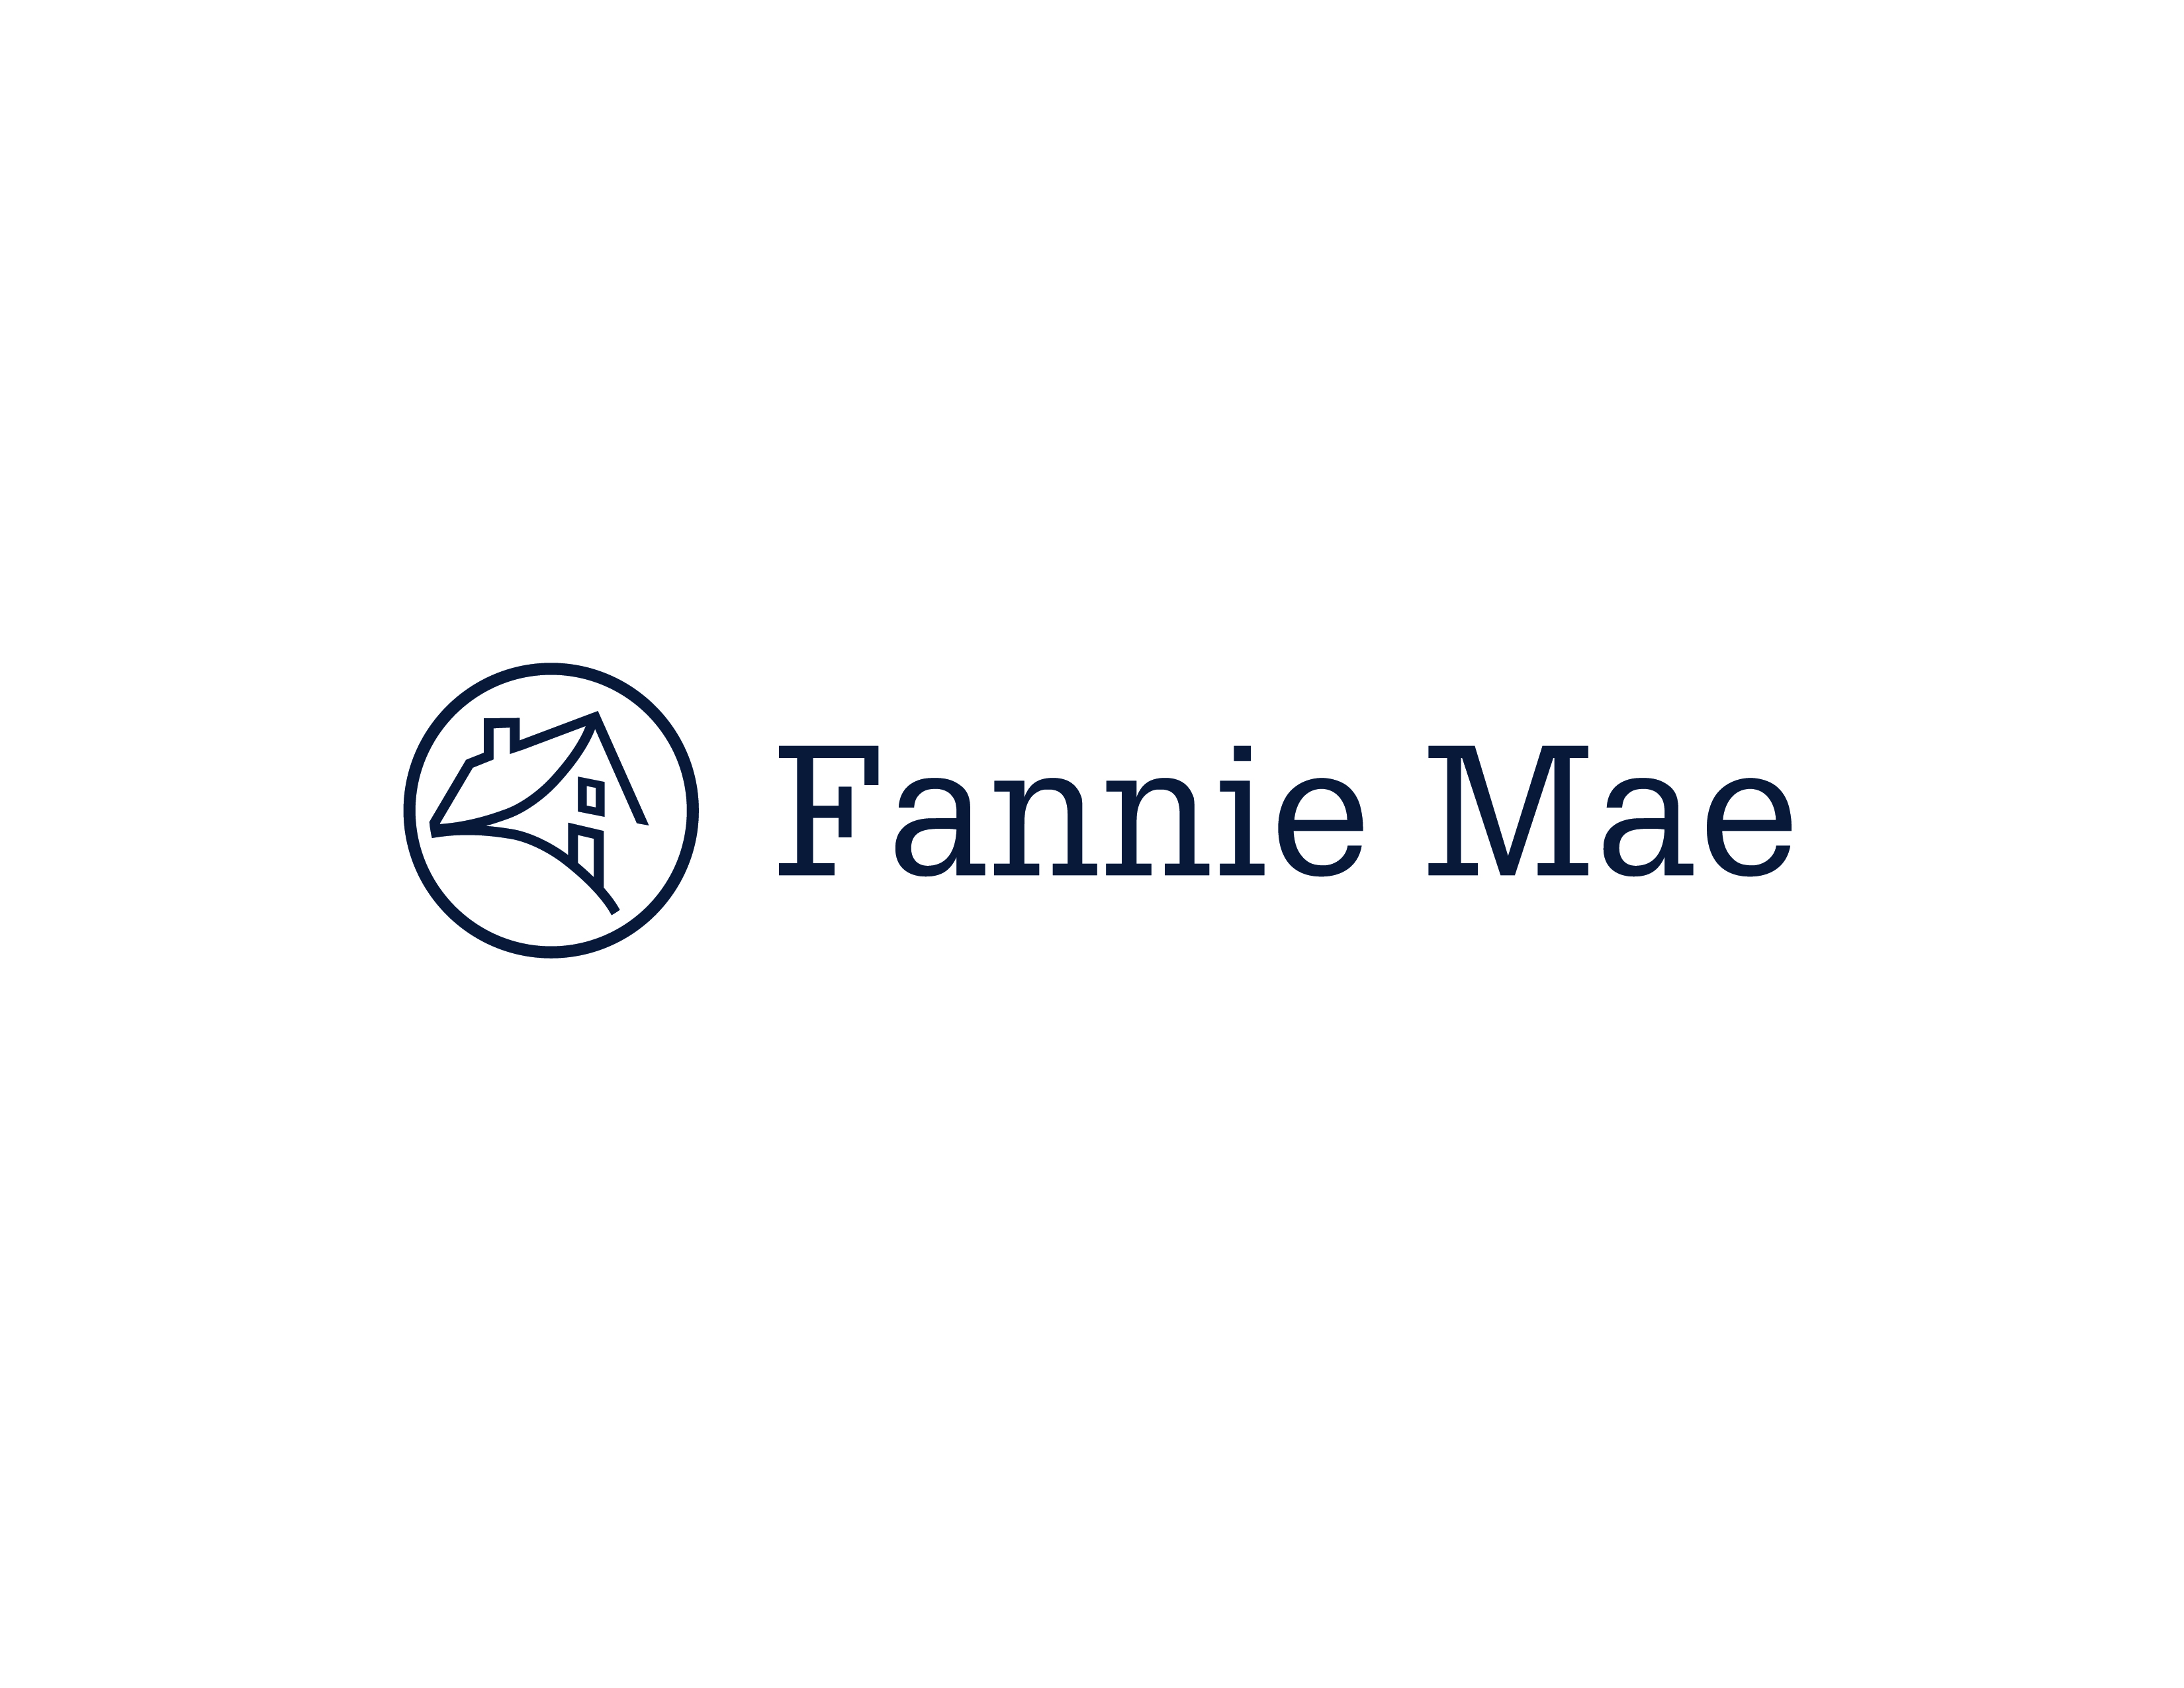 First Sale Of Reperforming Loans Announced By Fannie Mae